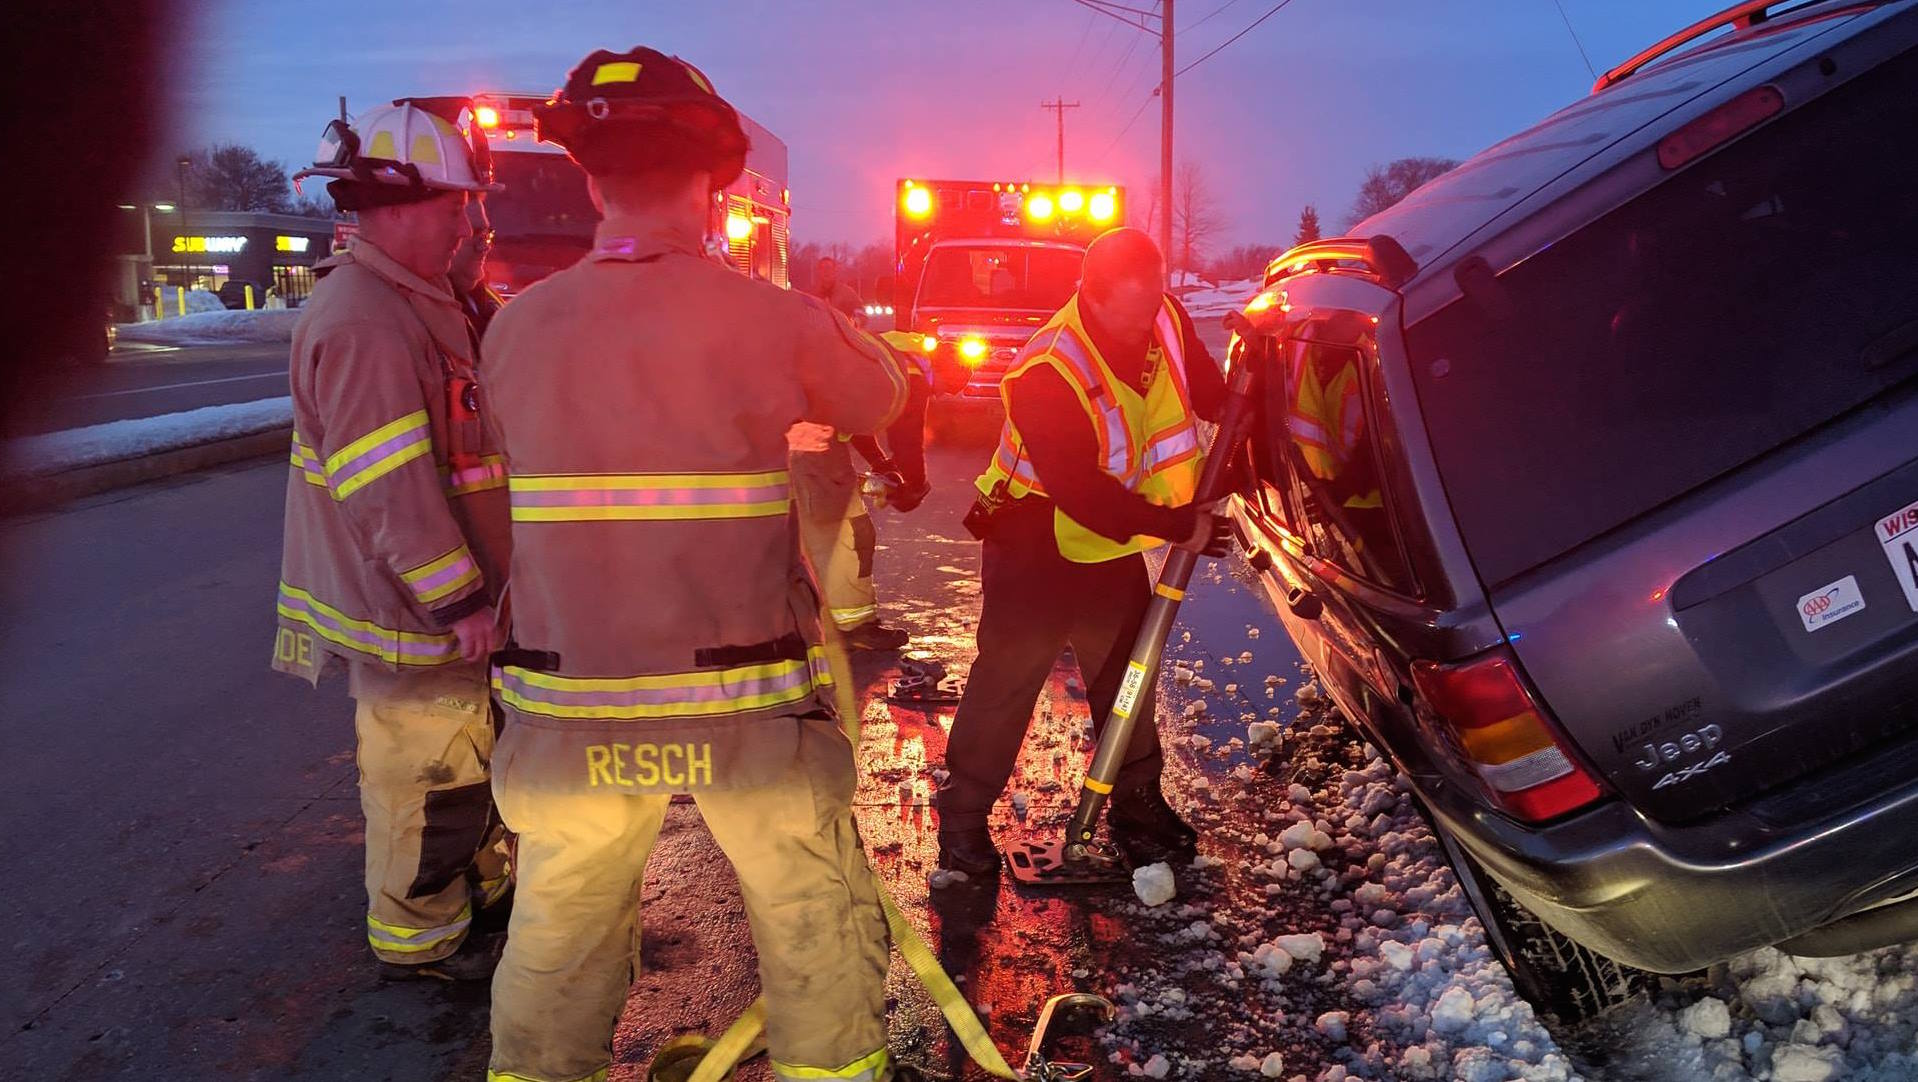 Firefighters work to remove a driver from a vehicle Feb. 22, 2019 on Crooks Avenue in Kaukauna. Kaukauna Fire Department photo